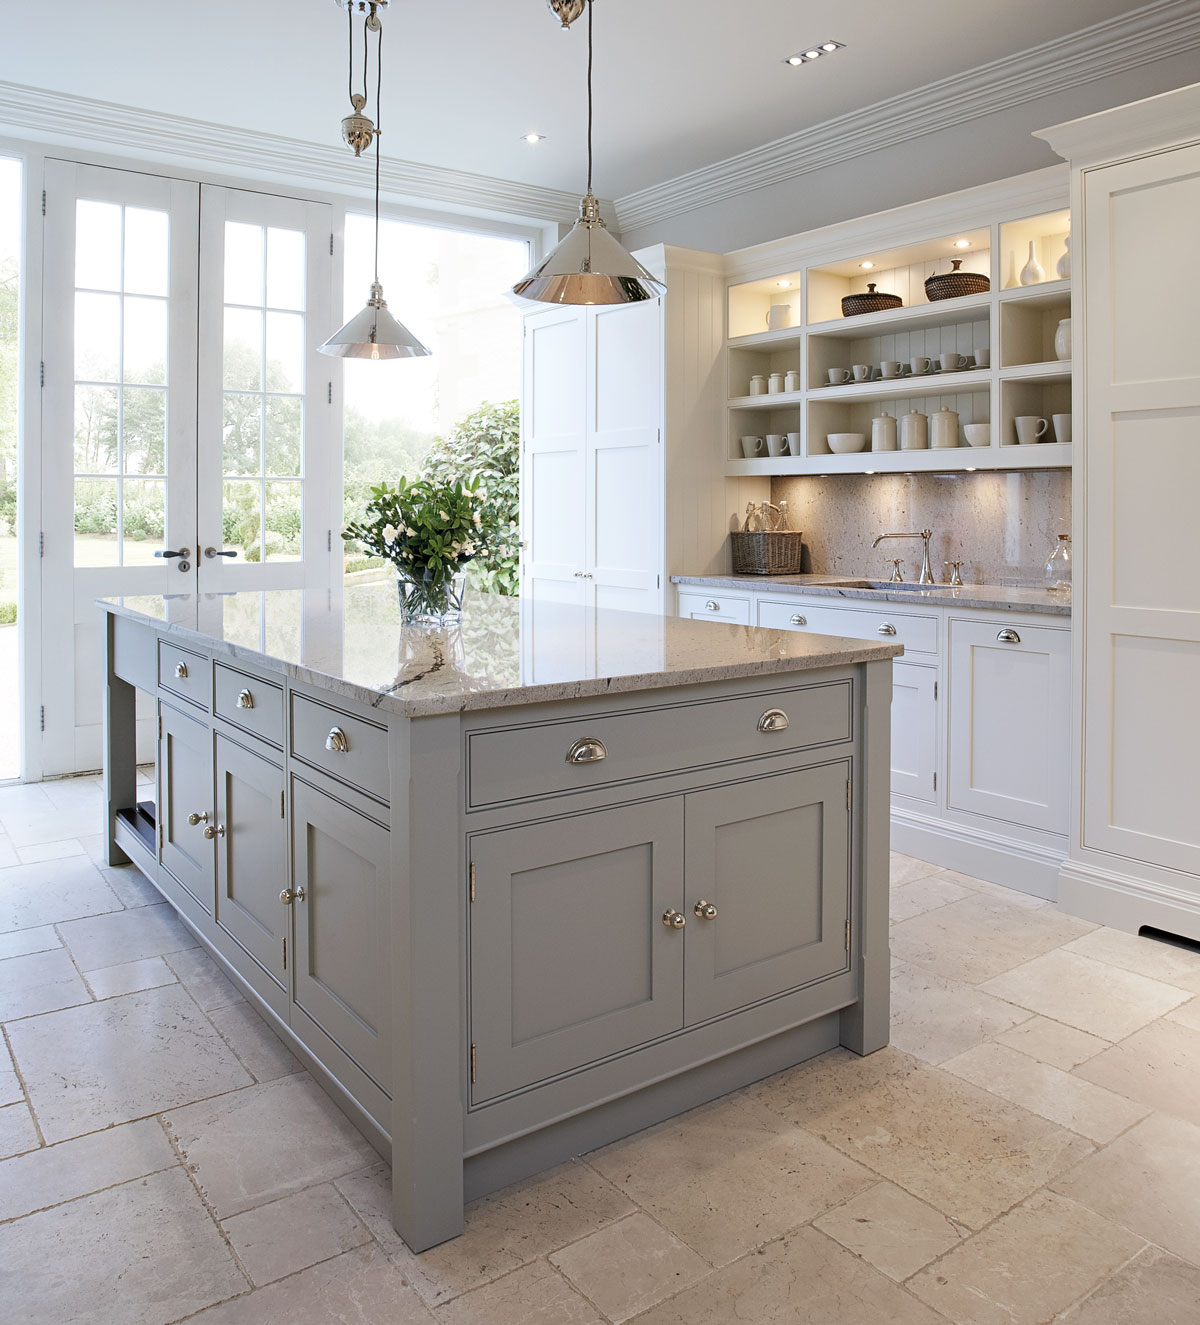 Delightful Our Talented Designers Will Work With You To Create The Perfect Island For  Your Kitchen, With All The Features You Desire. Kitchen Islands Can Be ...